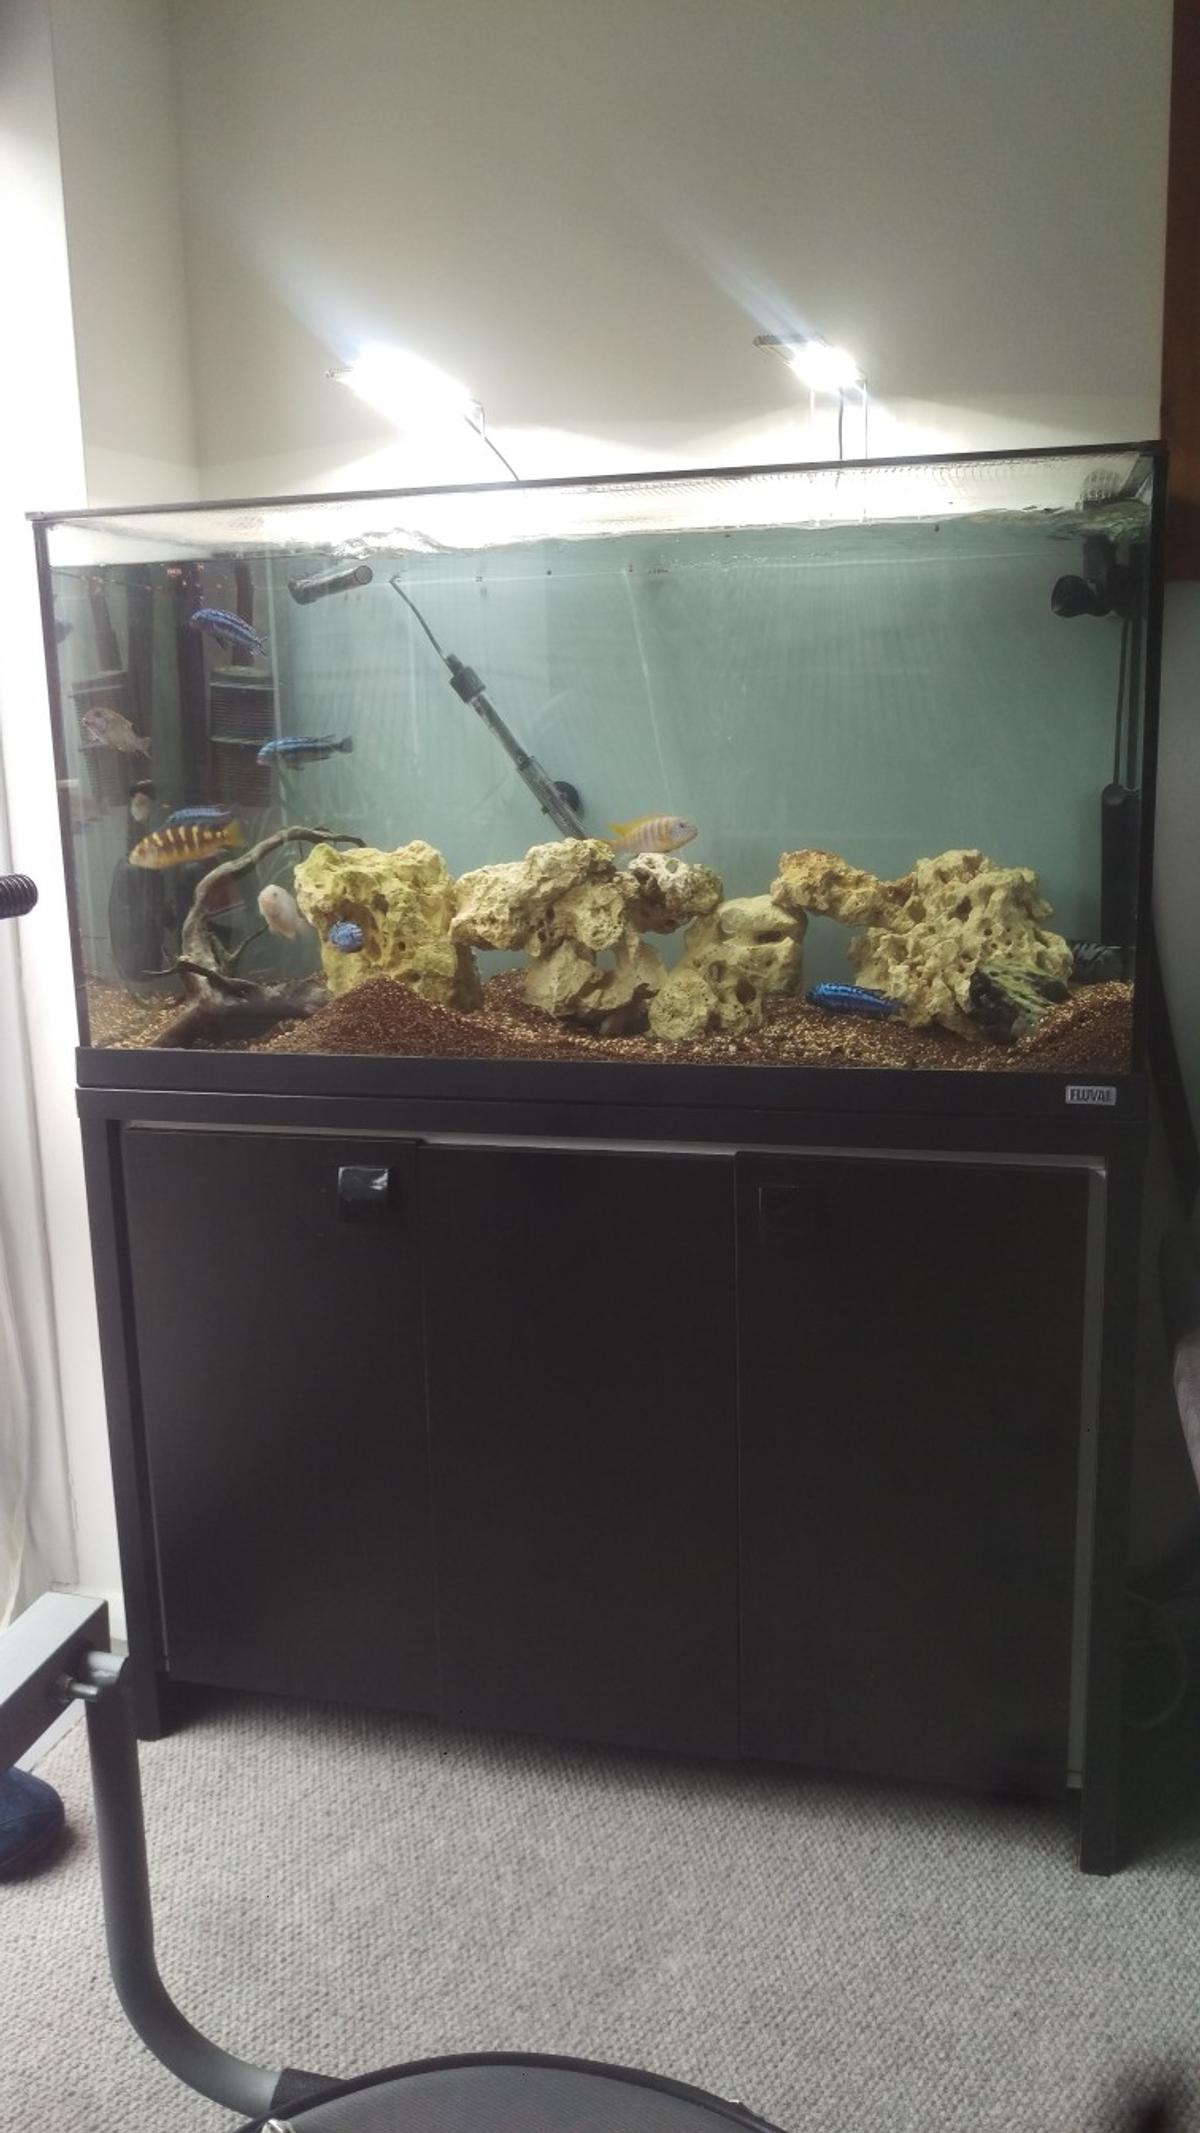 Phenomenal Fluval Roma 215 Litre Cichlid Setup Fish Tank In N15 London Download Free Architecture Designs Scobabritishbridgeorg